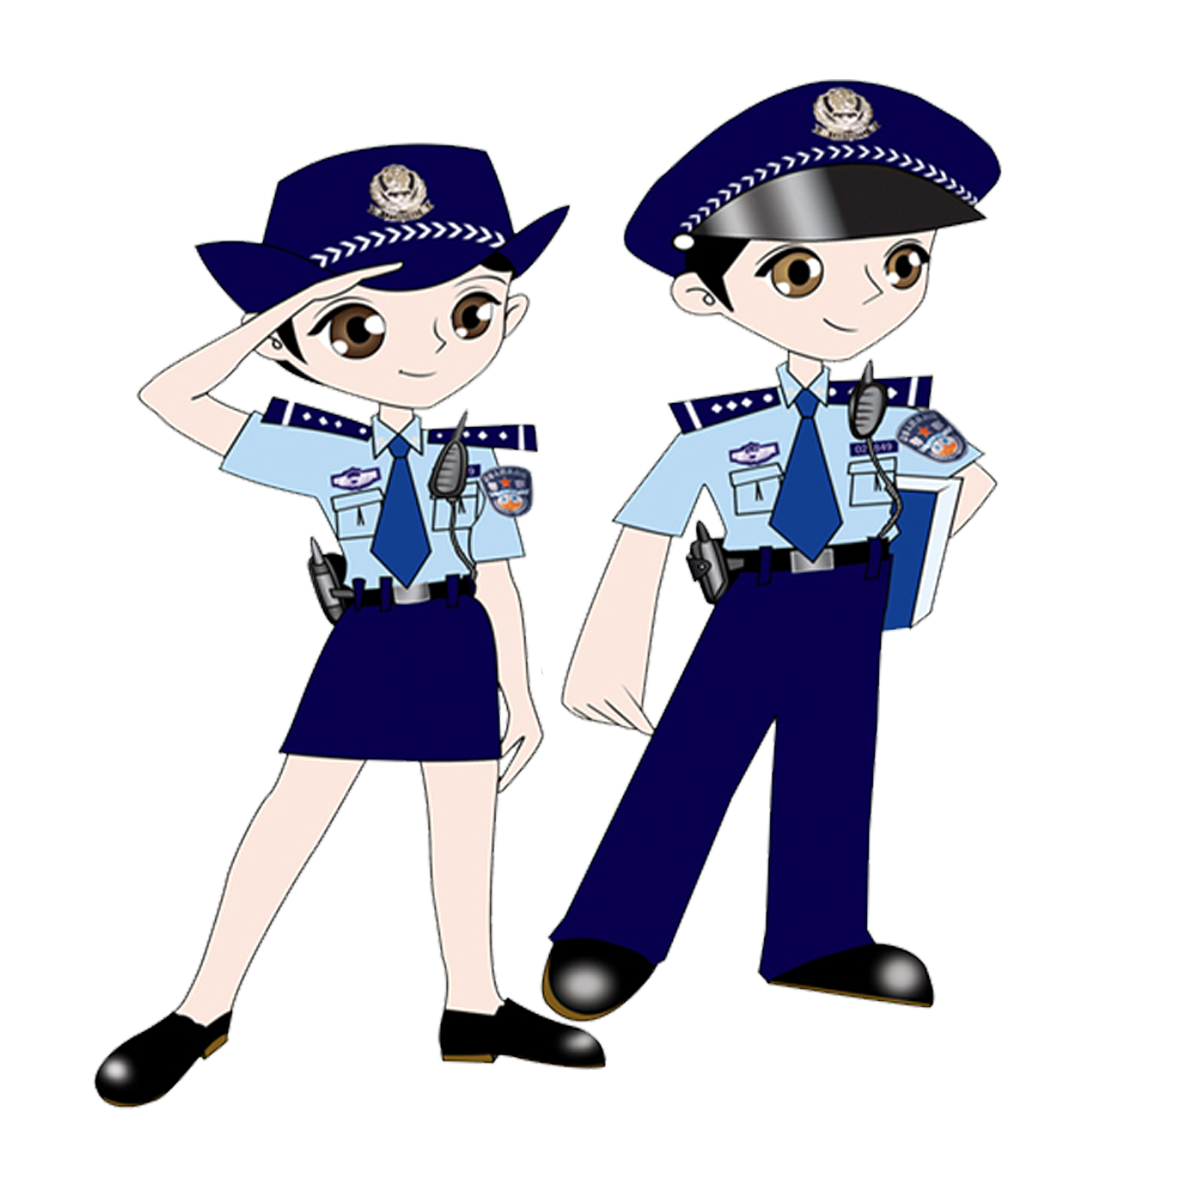 School security guard clipart vector free Cartoon Police officer Animation - Police png elements 1181*1181 ... vector free